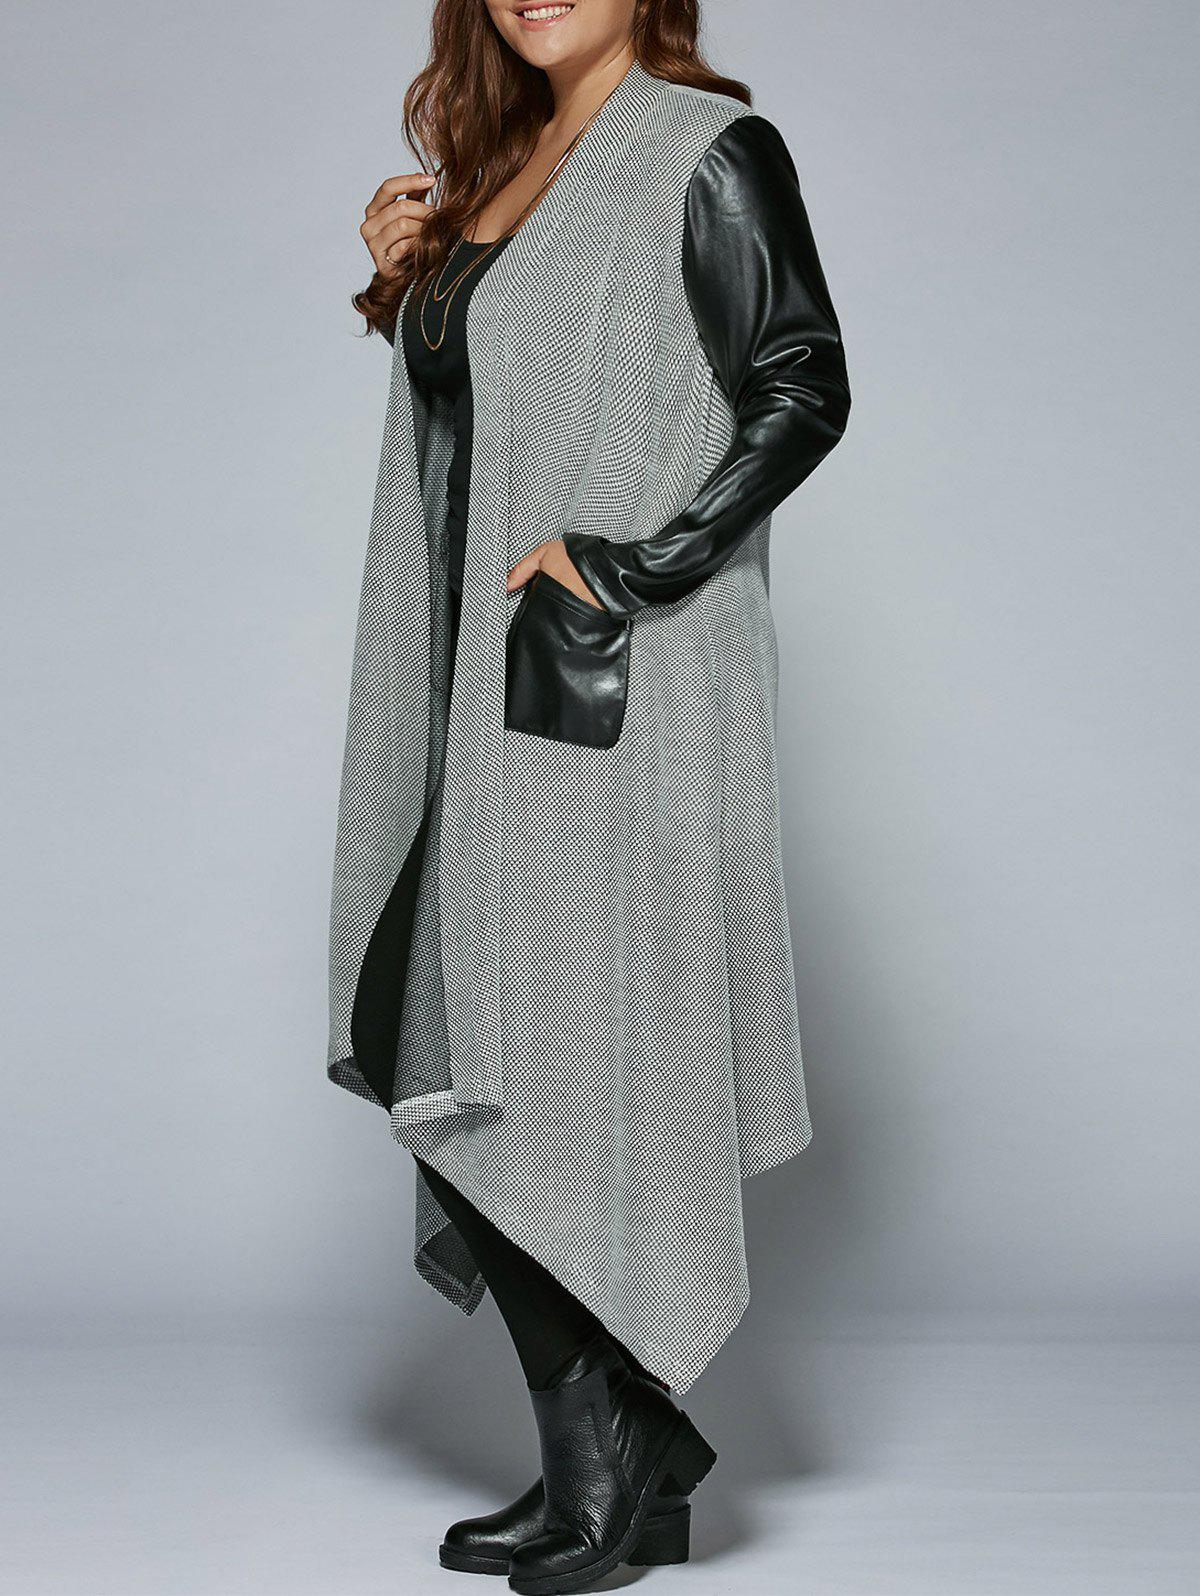 Plus Size PU Leather Trim Longline Asymmetrical CoatWOMEN<br><br>Size: XL; Color: BLACK AND GREY; Clothes Type: Trench; Material: Rayon; Type: Asymmetric Length; Shirt Length: Long; Sleeve Length: Full; Collar: Collarless; Pattern Type: Solid; Embellishment: Pockets; Style: Fashion; Season: Fall,Spring; Weight: 0.5160kg; Package Contents: 1 x Coat;